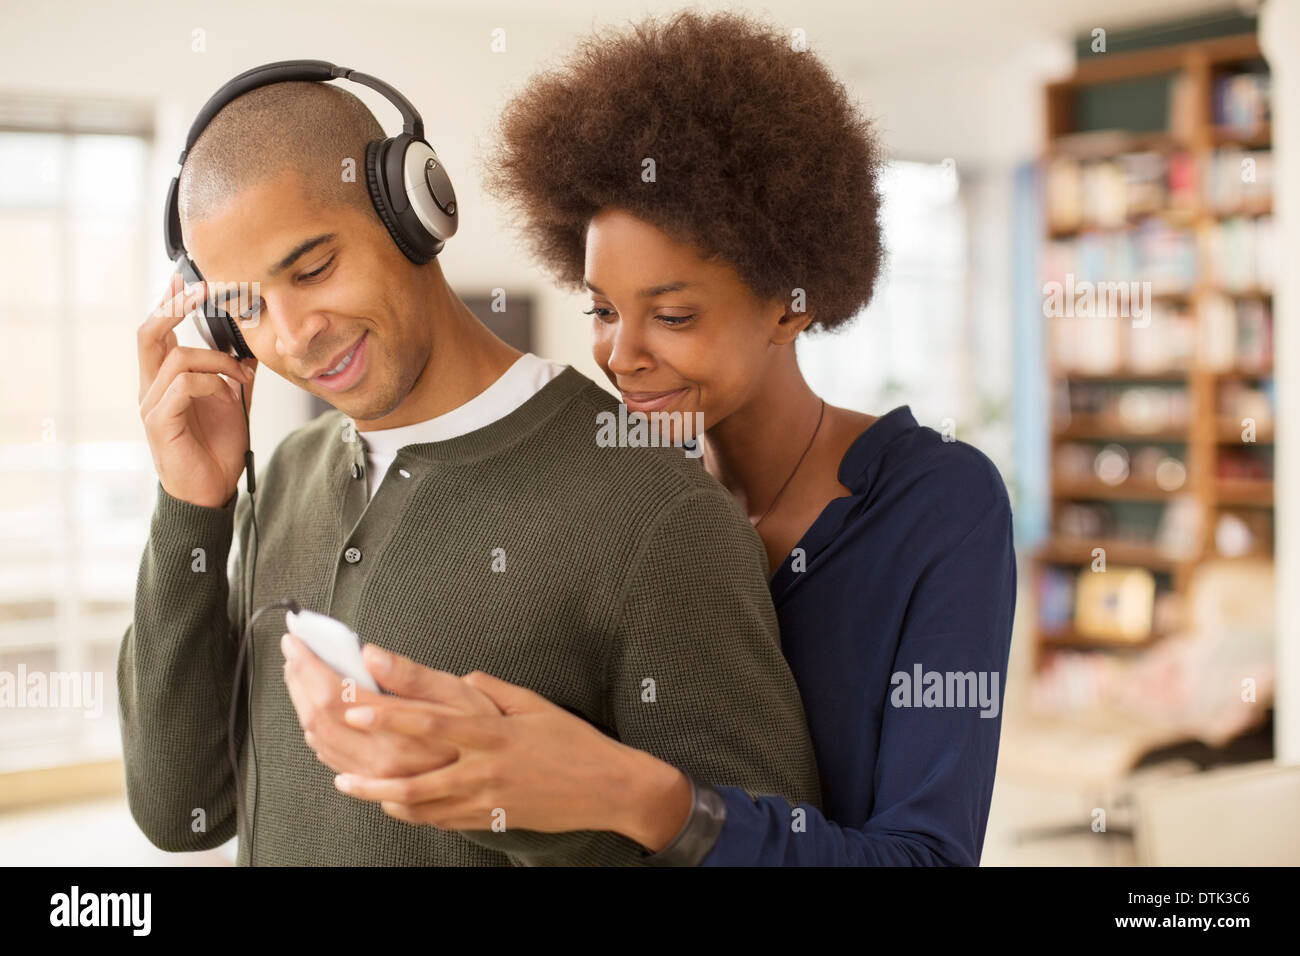 Couple using mp3 player together - Stock Image